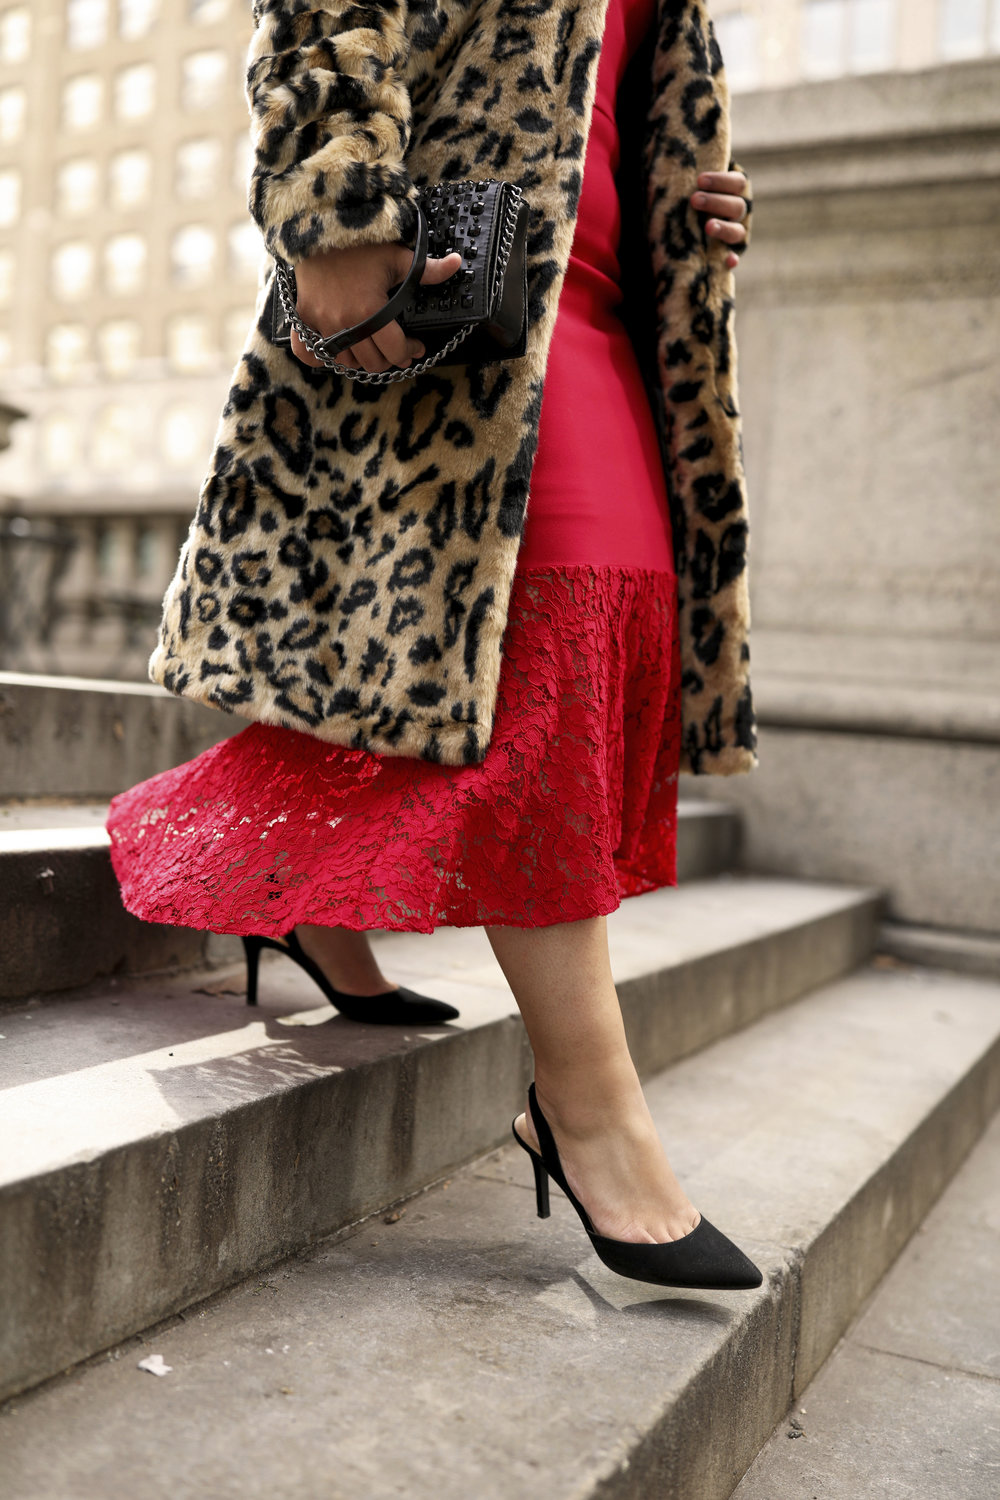 Make an entrance - with a red dress…